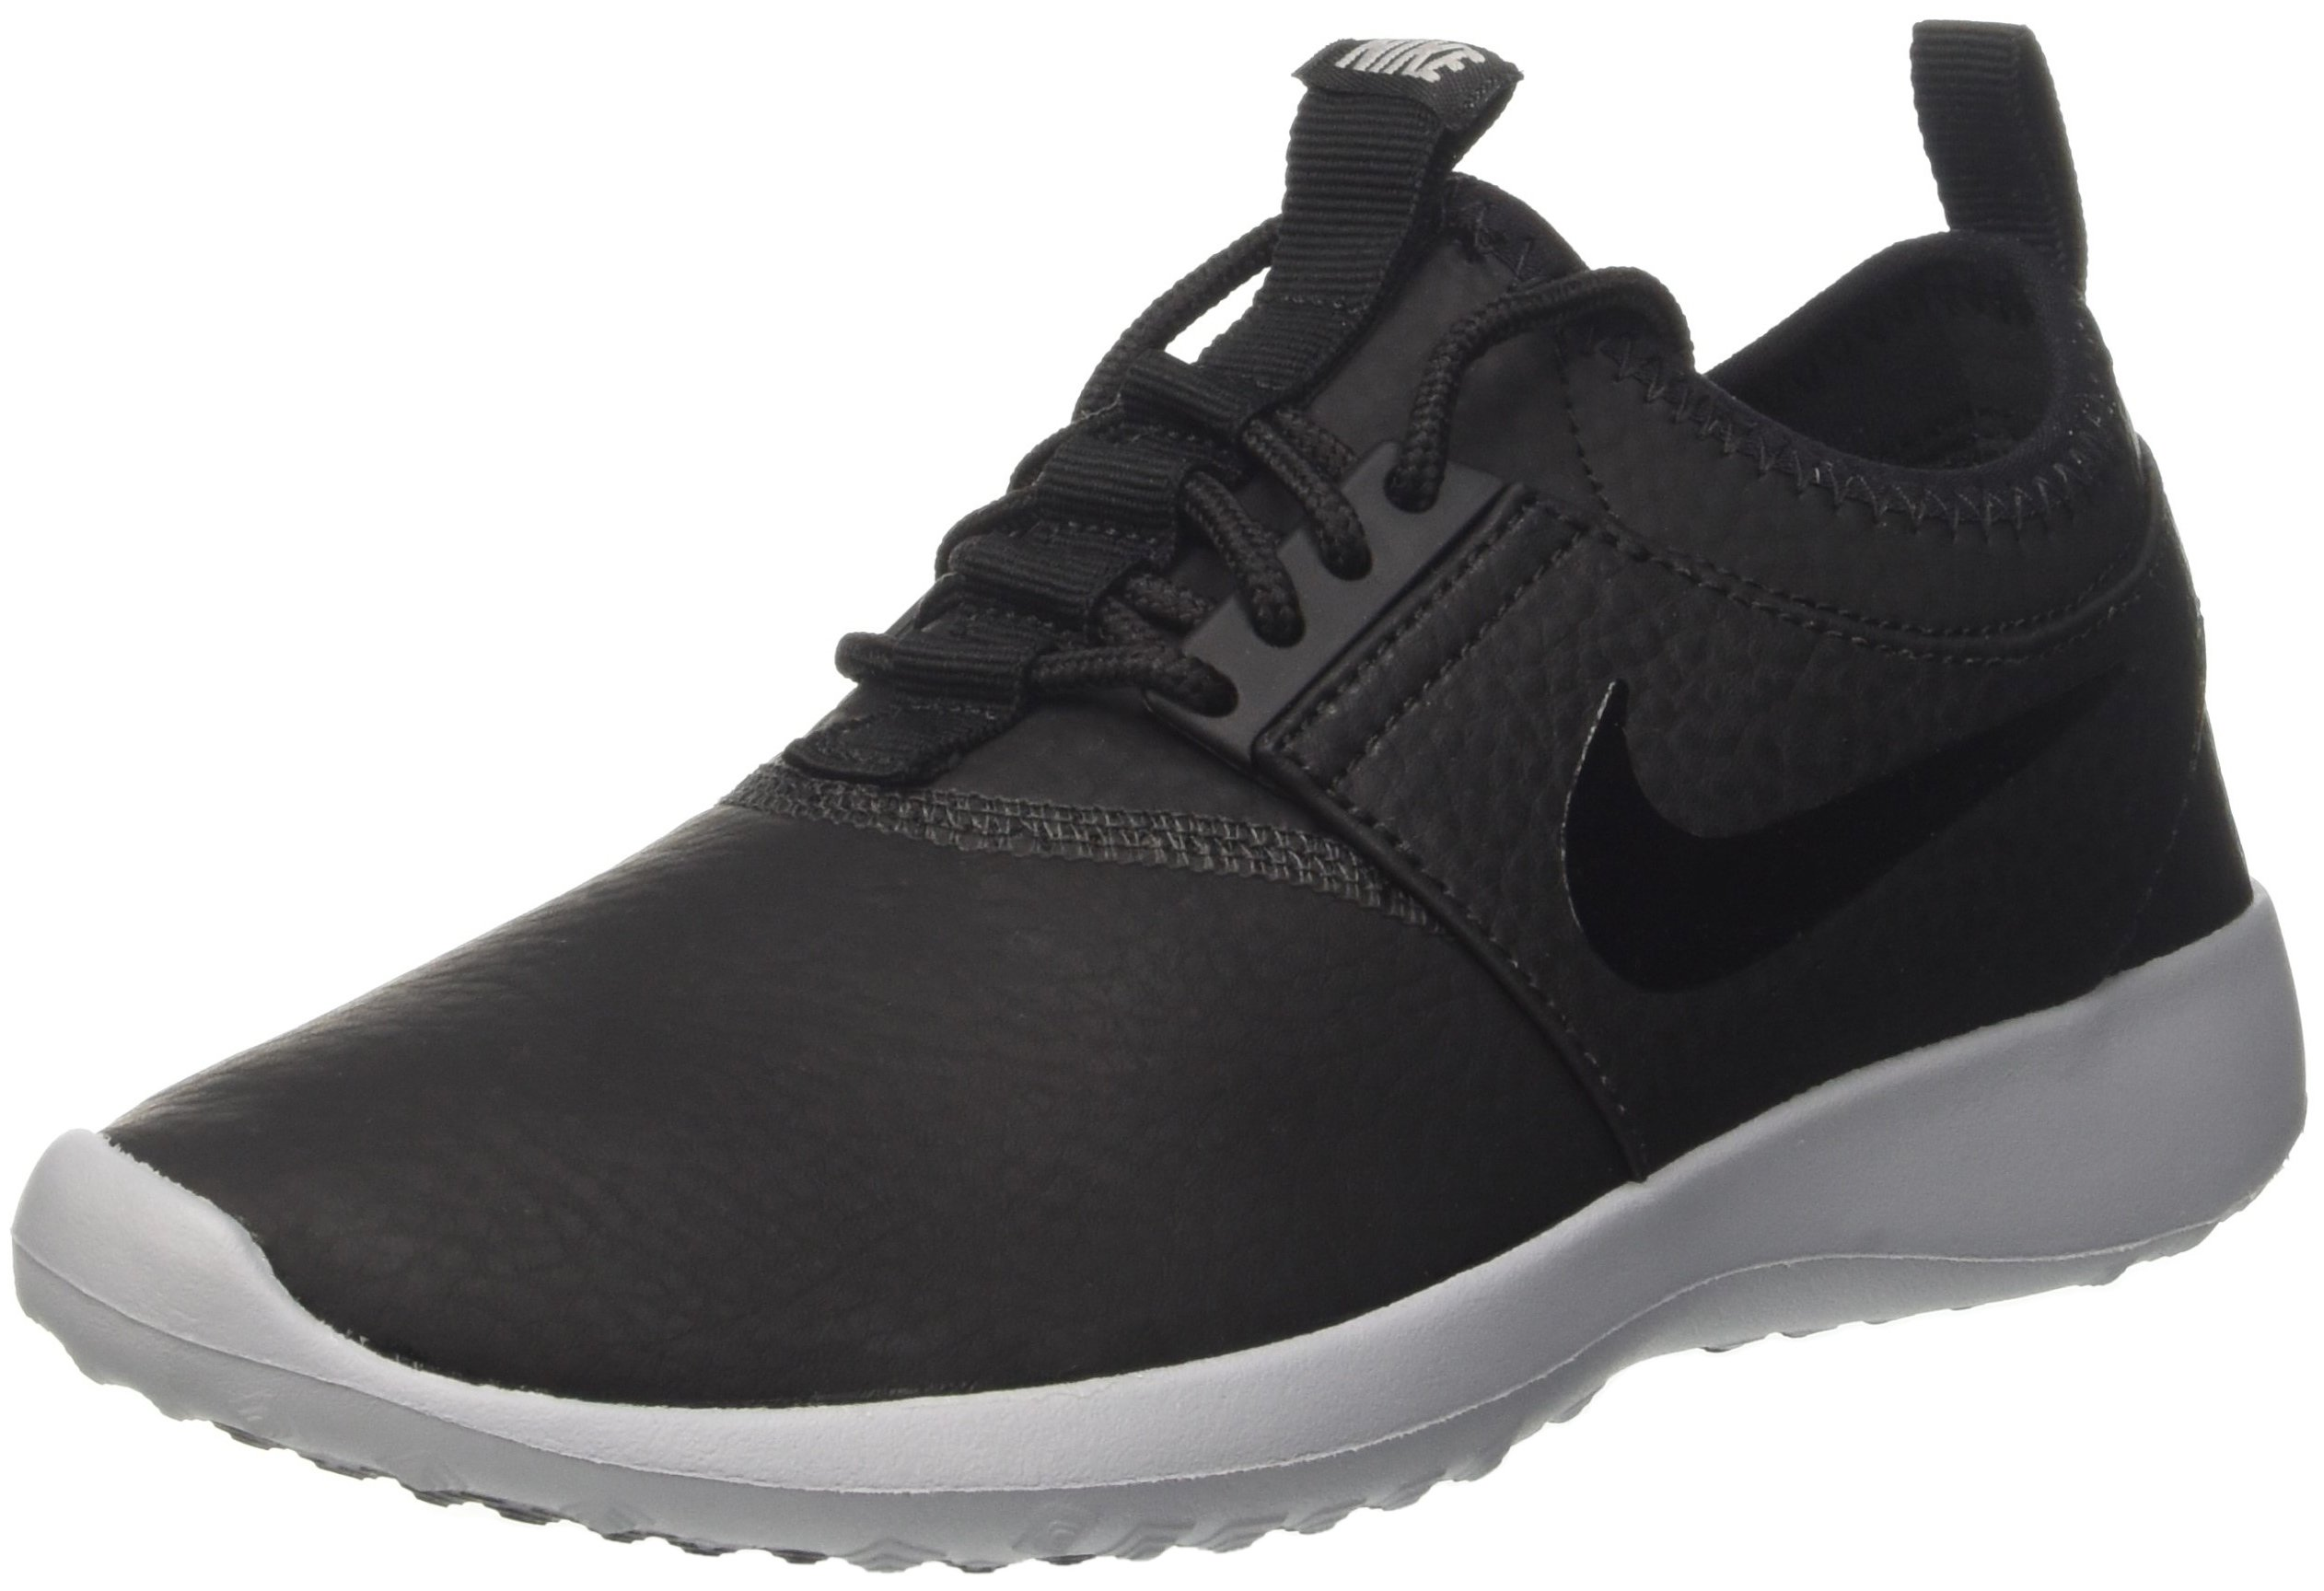 Nike Womens Juvenate Premium Black Synthetic Trainers 7 US